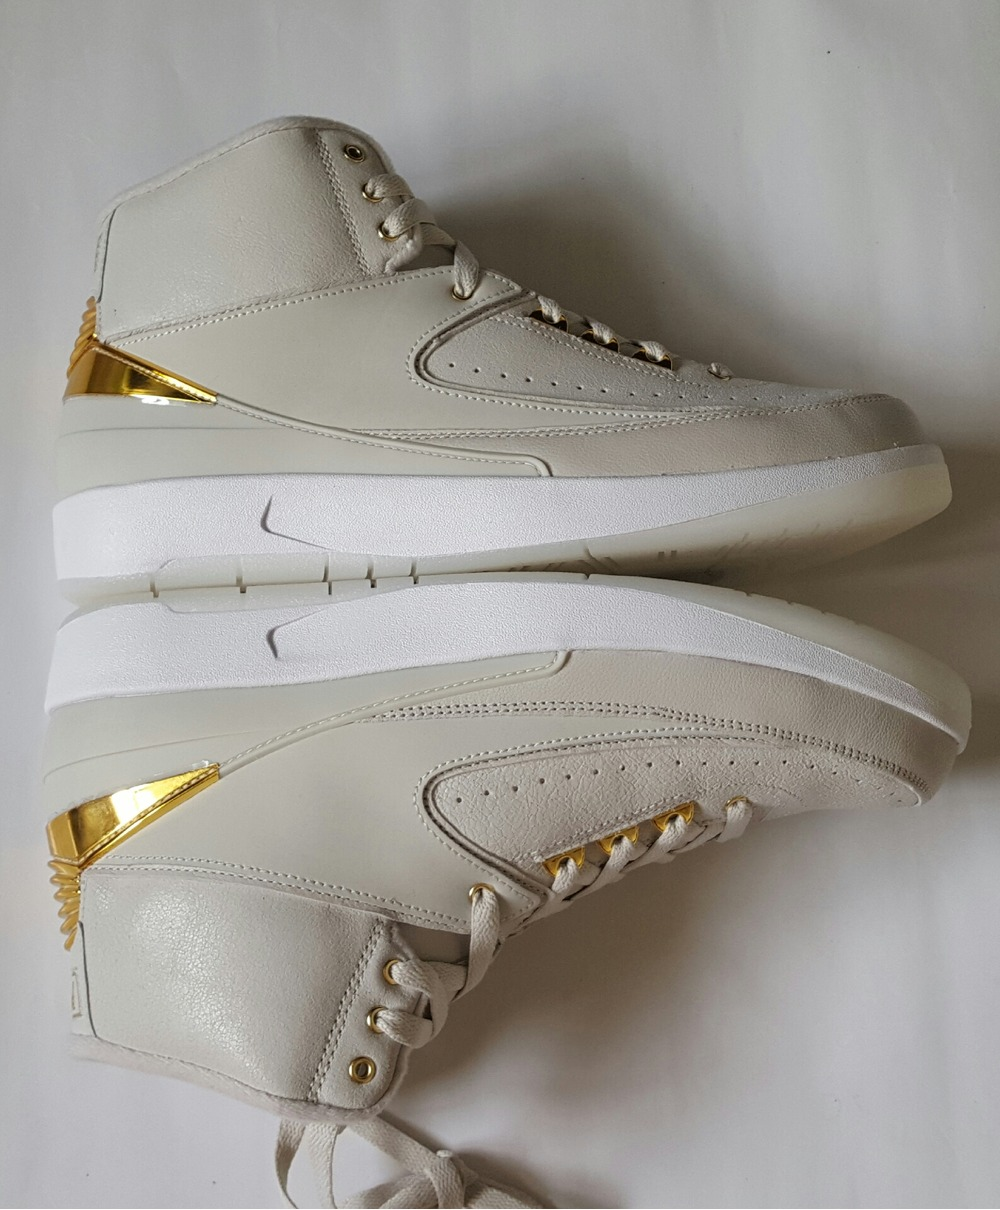 Air Jordan 2 Quai 54 us 8.5 /42 eu - photo 5/5